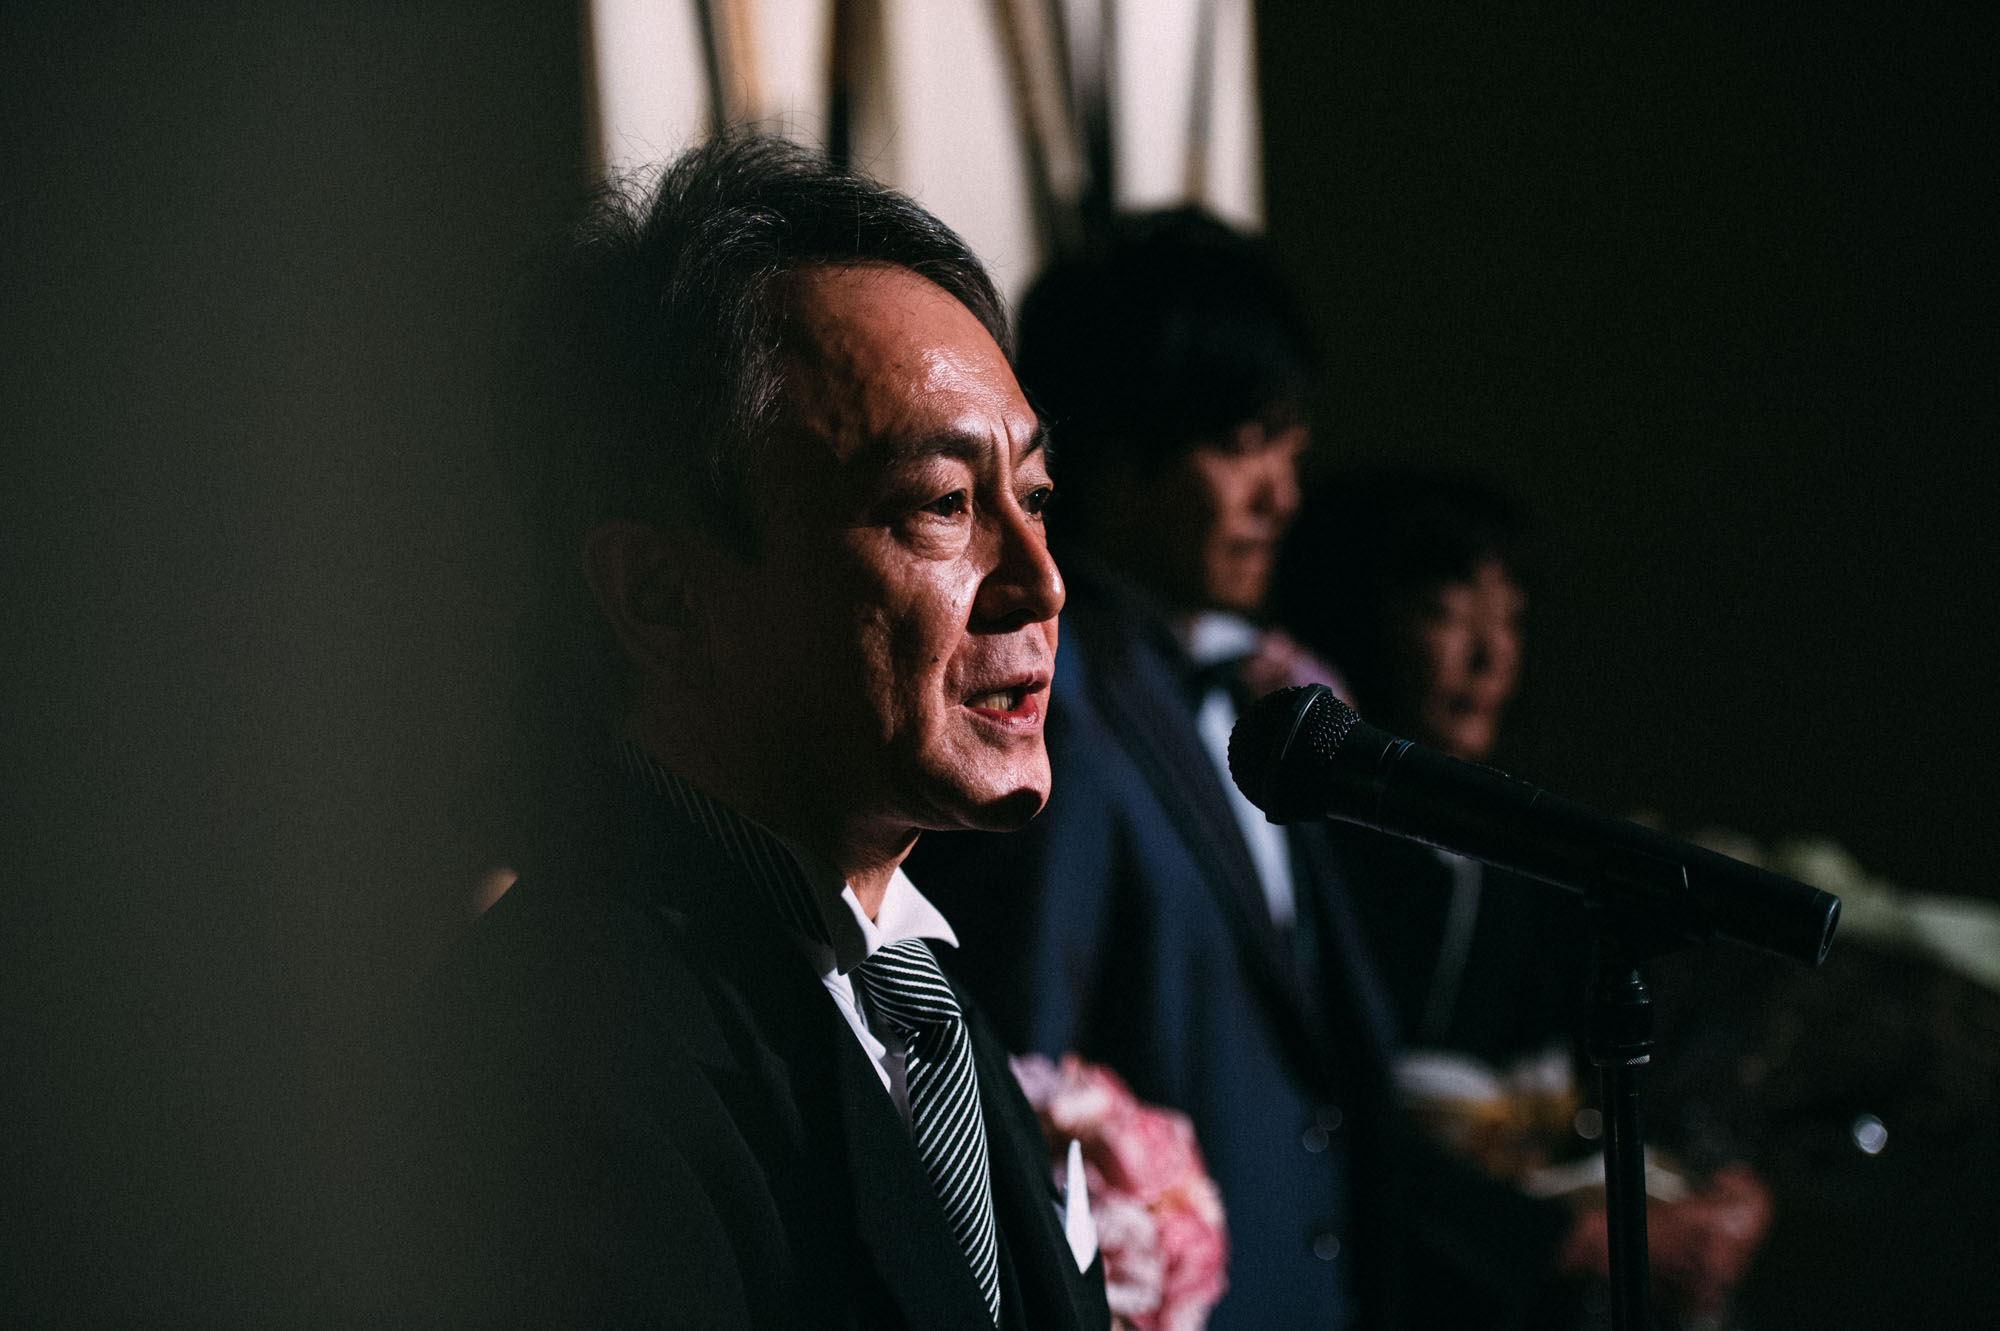 nagoya wedding162